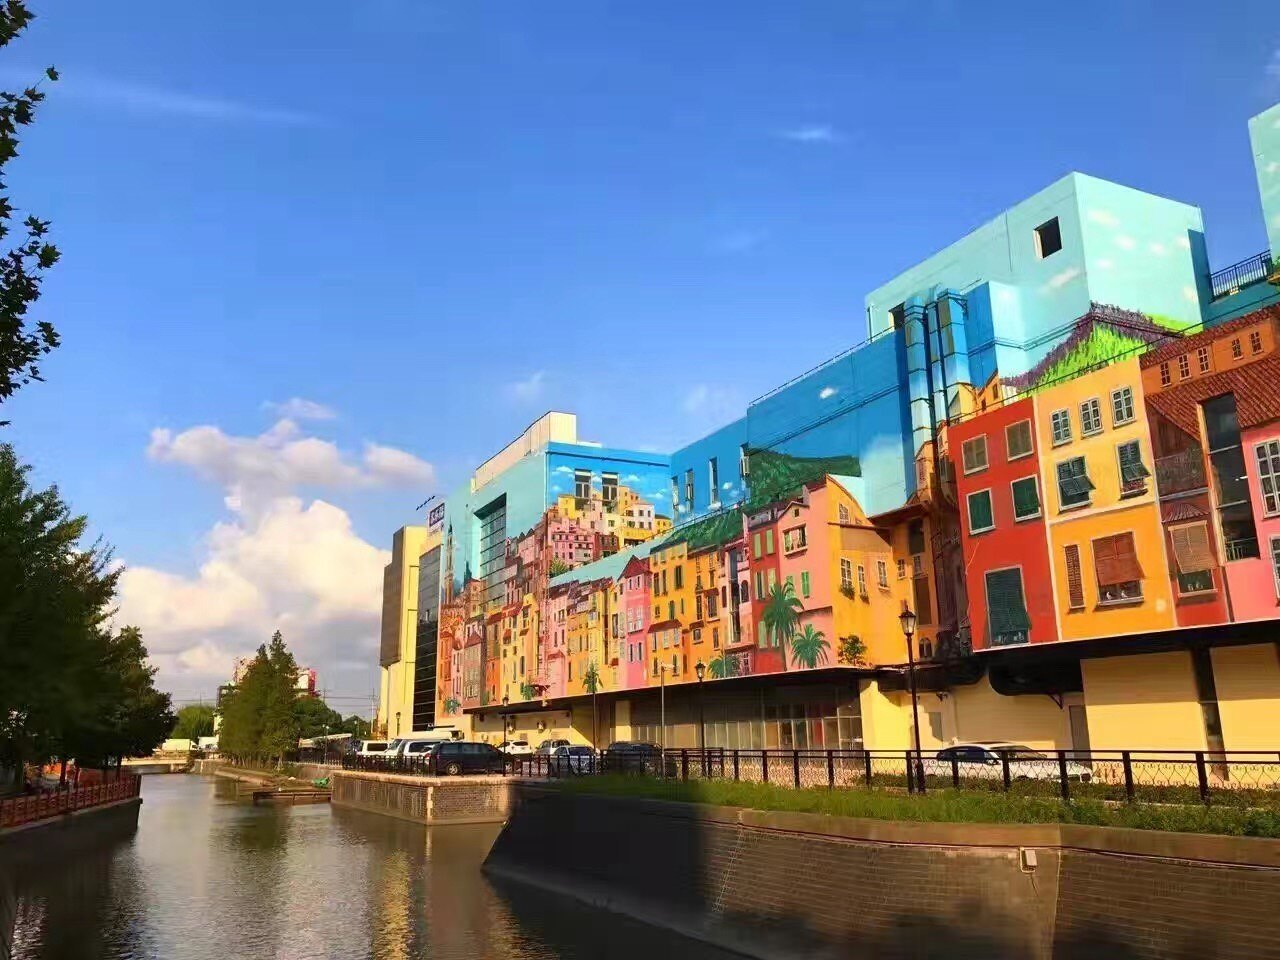 A building that is next to a river and the building is painted in a lot of colorful ways to make it look older.